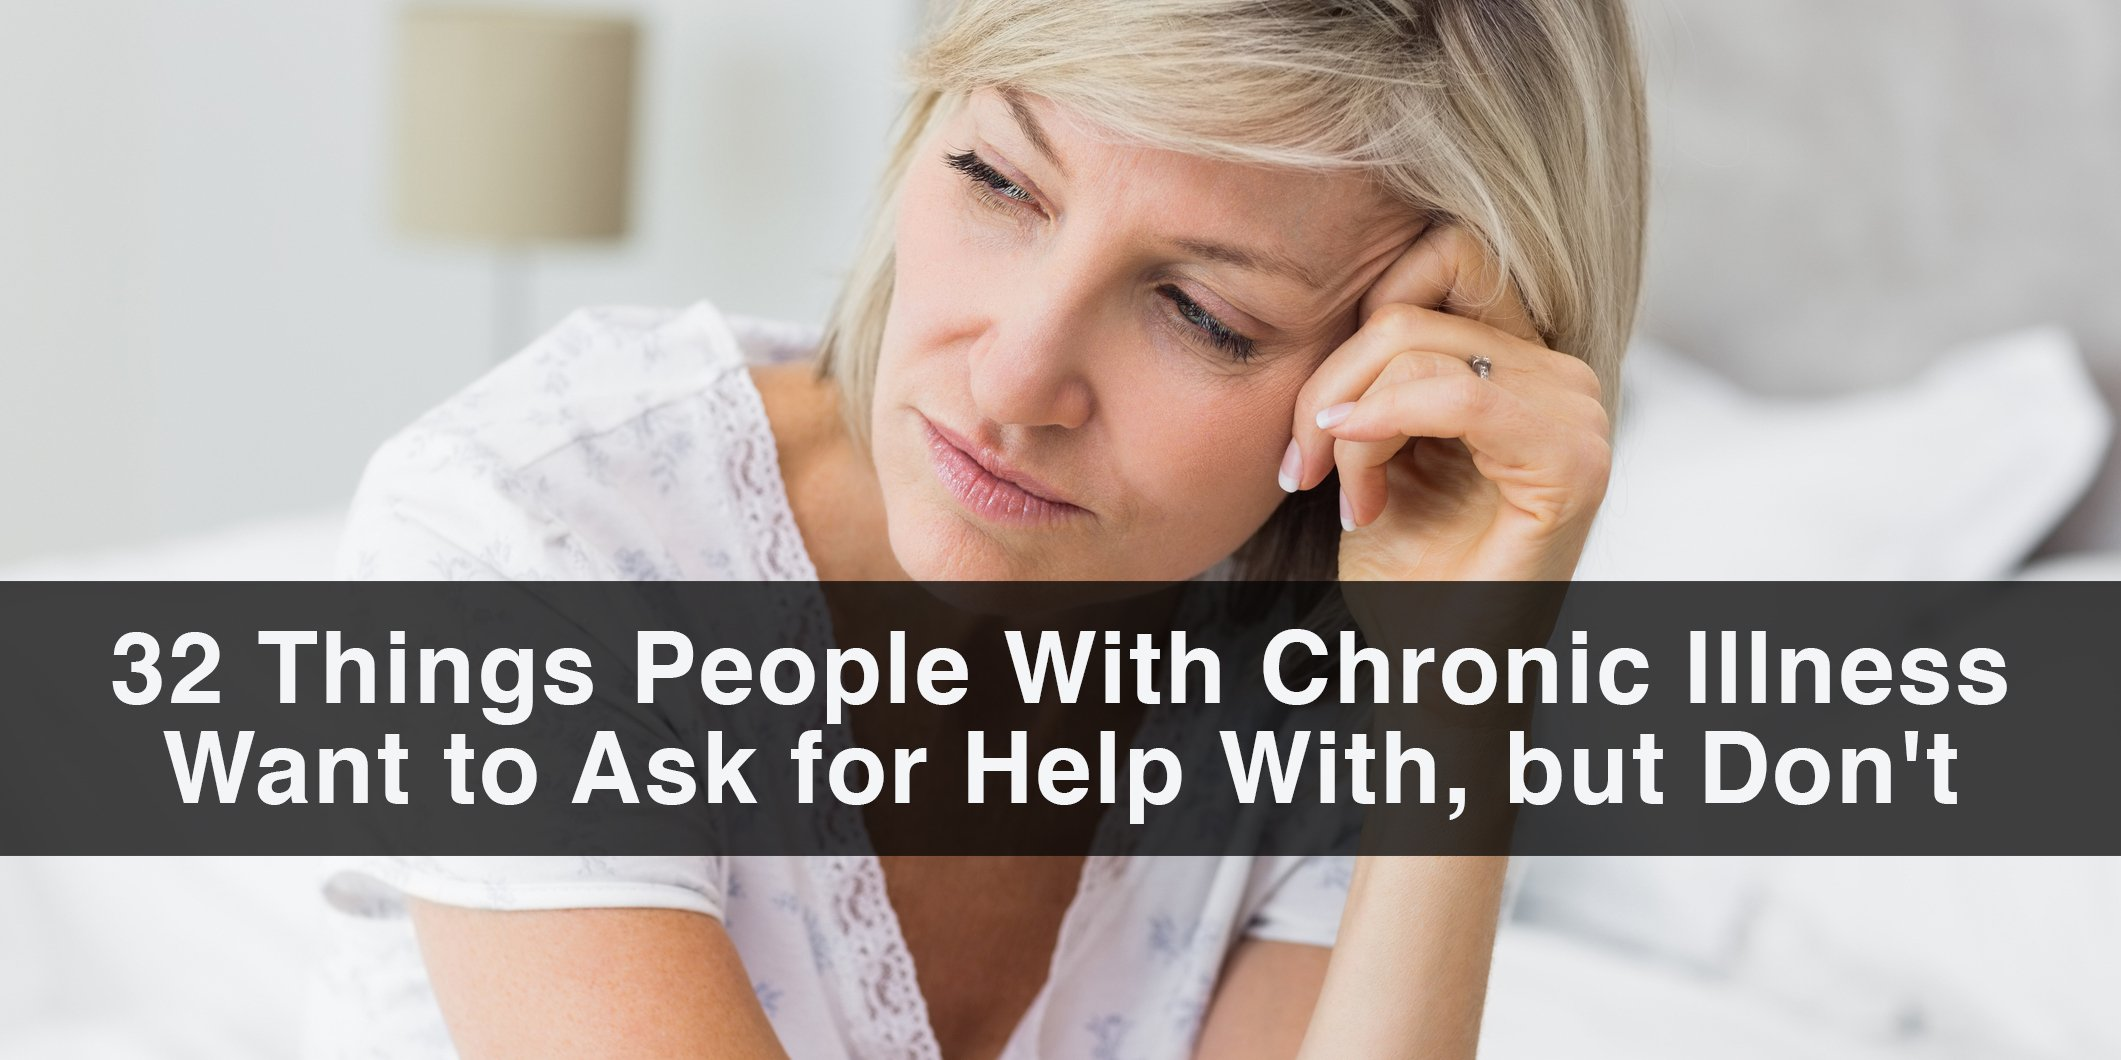 32 Things People With Chronic Illness Want to Ask for Help With, but Don't